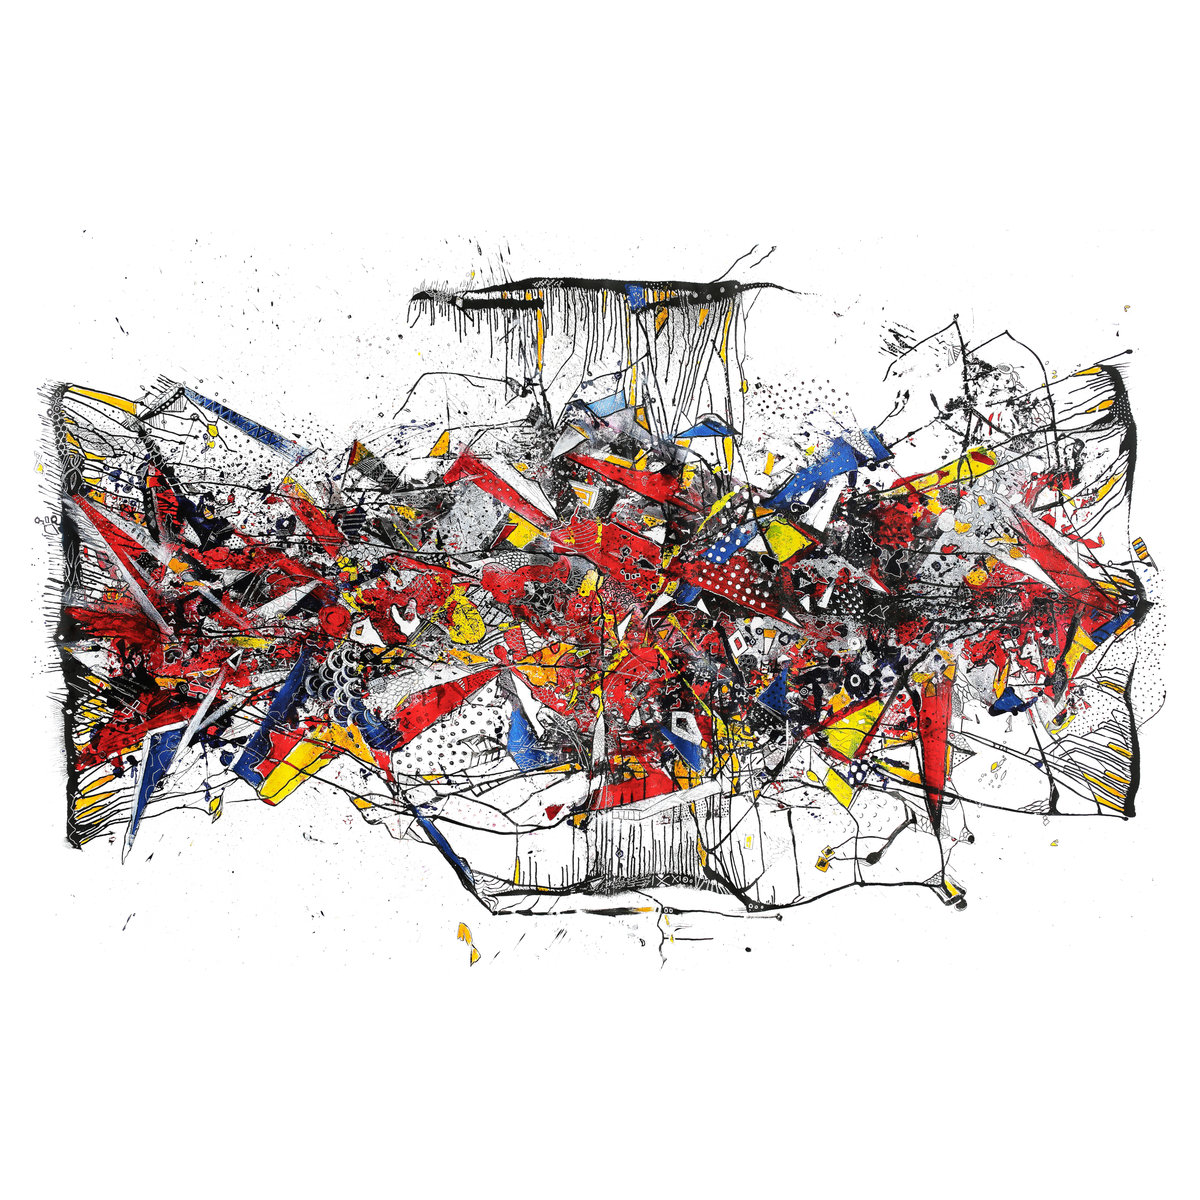 mewithoutYou: [Untitled] - Spectrum Culture